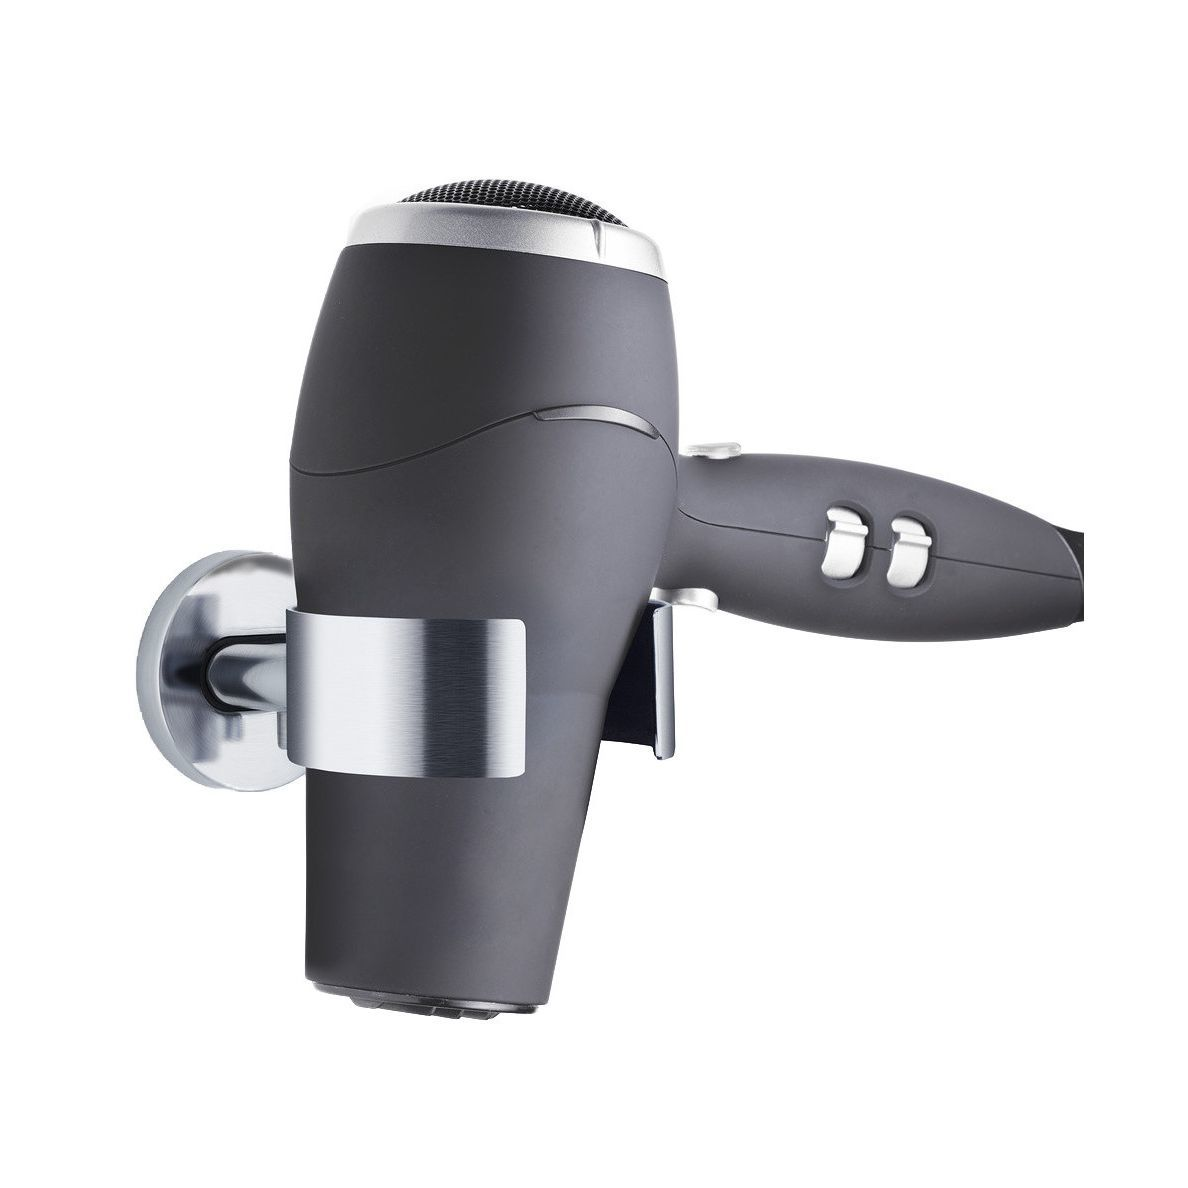 Wall-mounted hair dryer holder with chrome finish photo